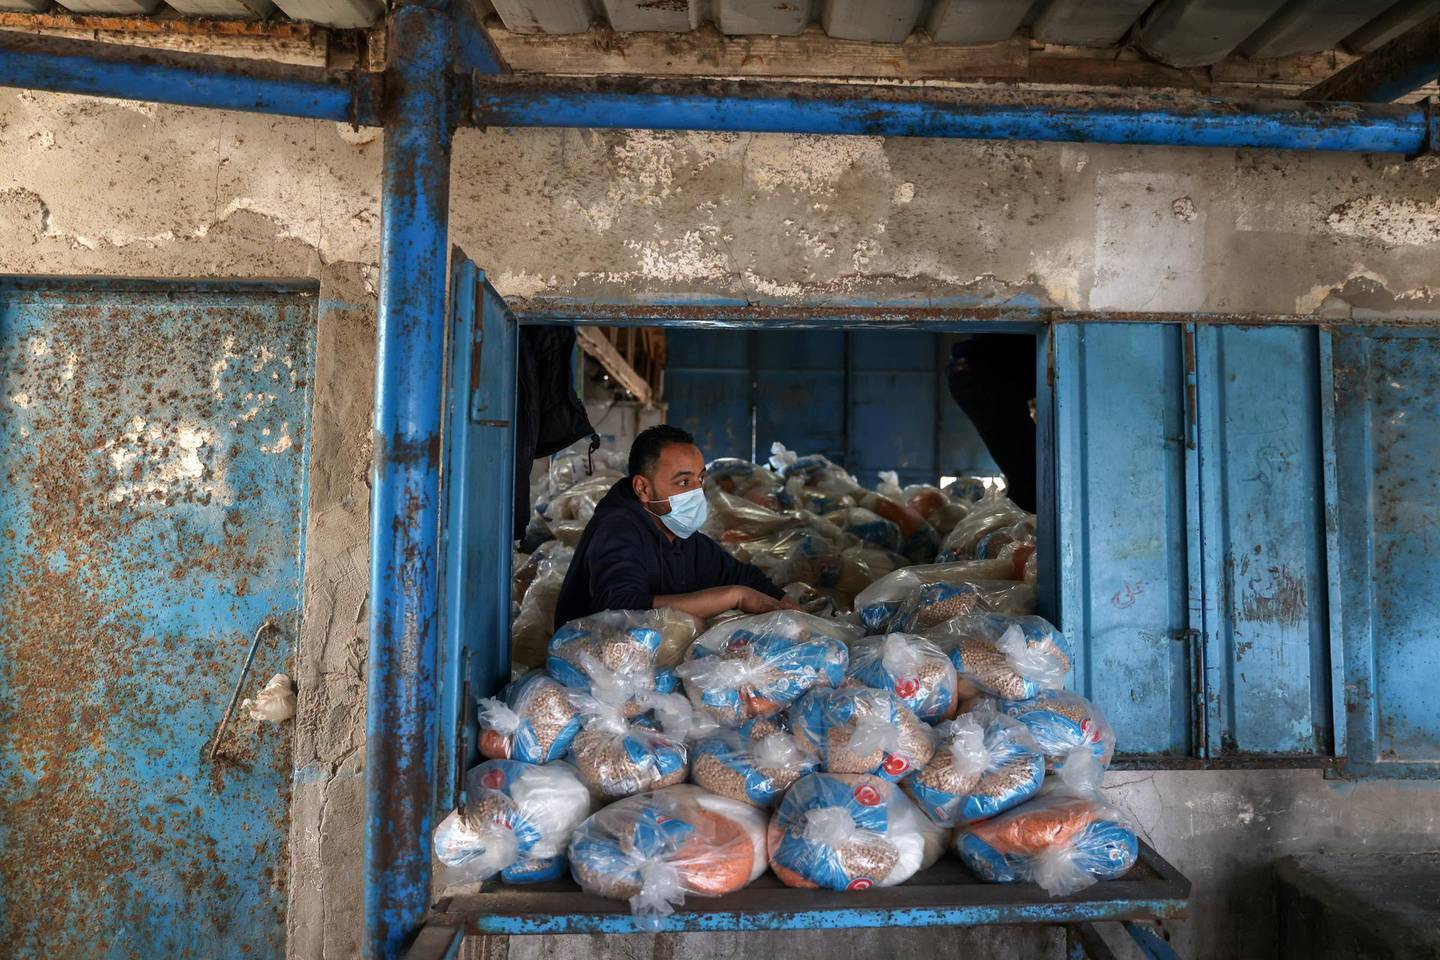 A Palestinian worker looks on as he prepares bags of food supplies at an aid distribution center run by United Nations Relief and Works Agency (UNRWA), at Beach refugee camp in Gaza City April 7, 2021. REUTERS/Mohammed Salem